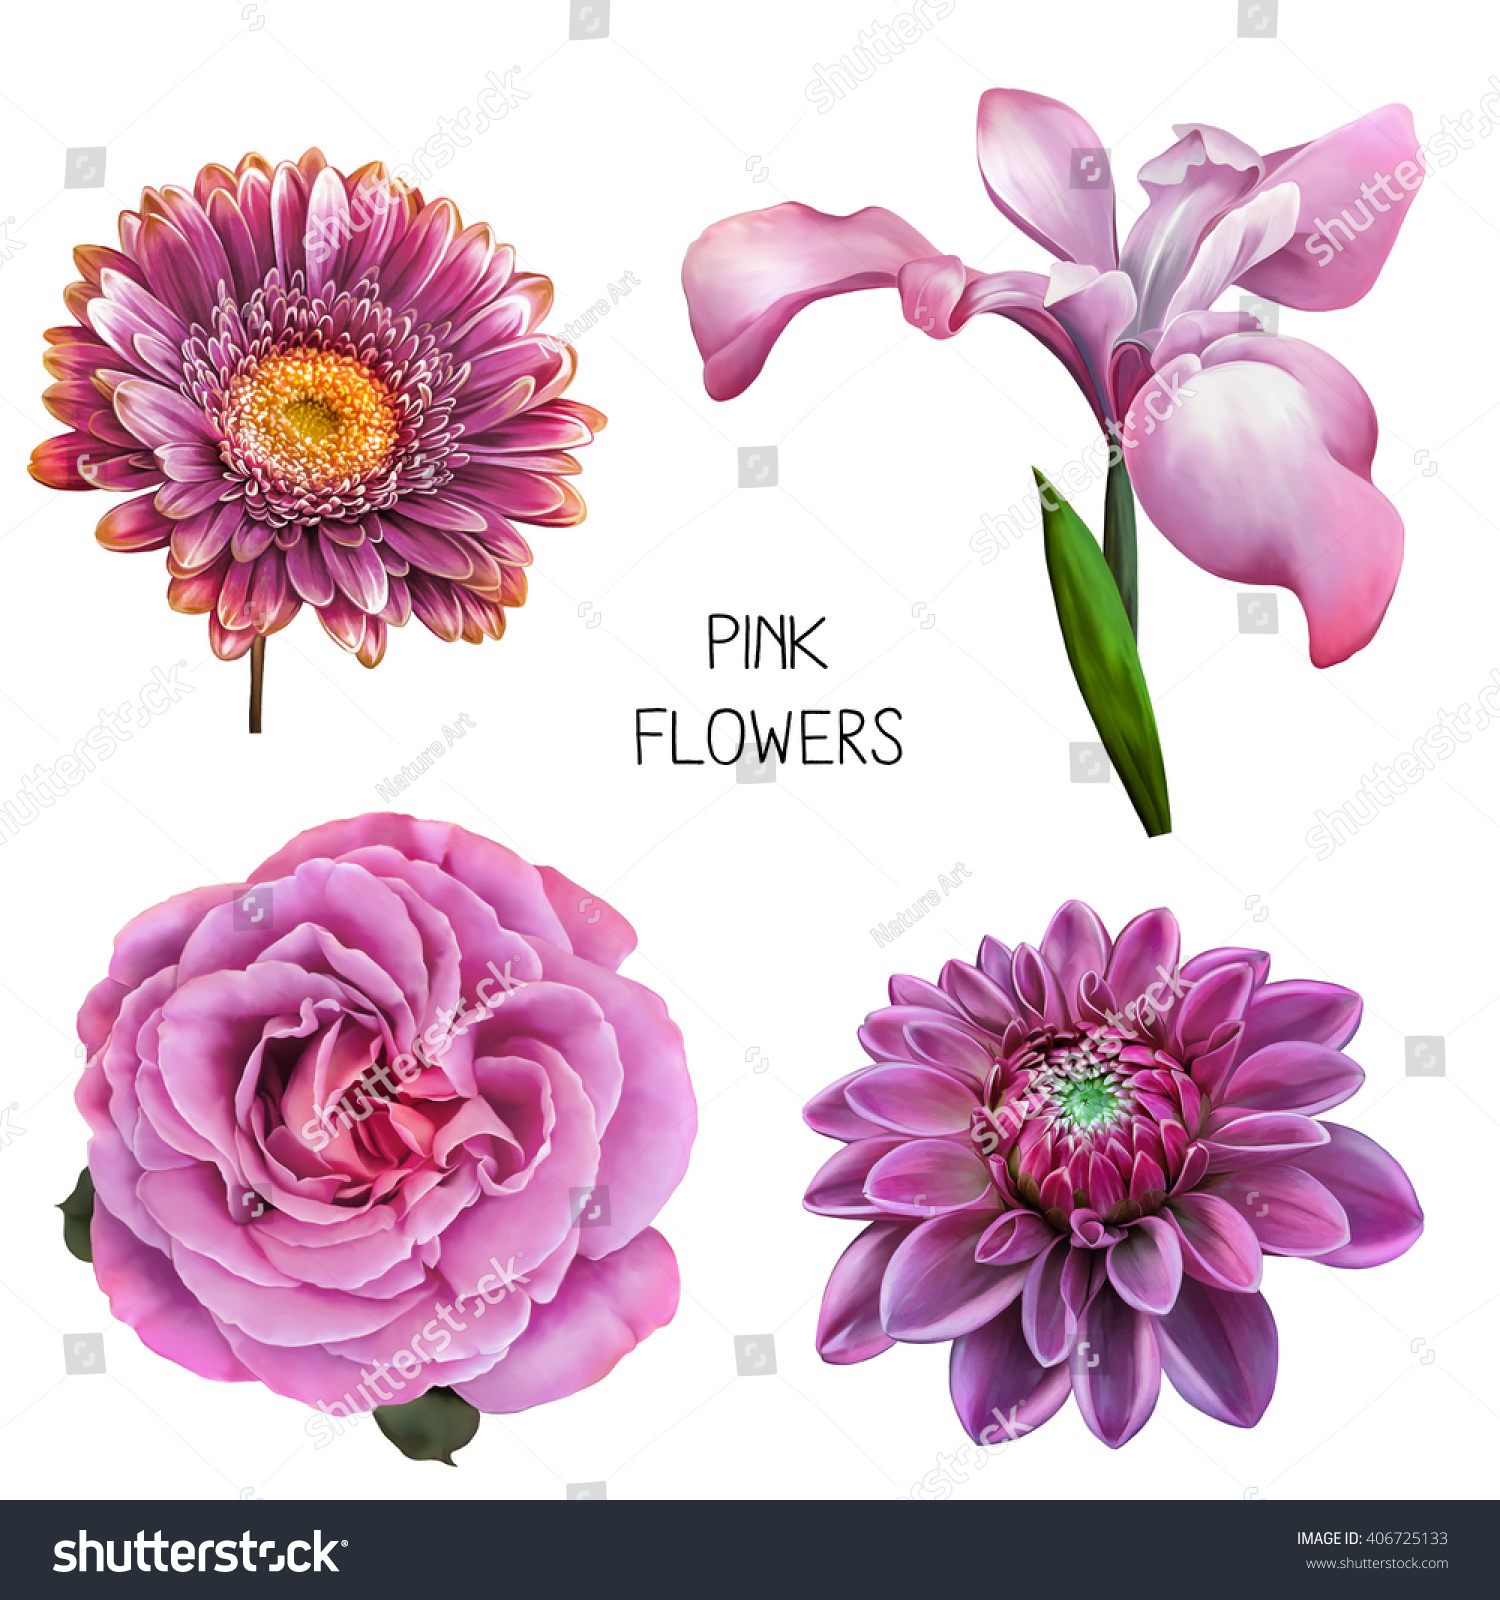 Illustration beautiful pink purple flowers set stock illustration illustration of beautiful pink and purple flowers set of spring flowers camellia rose izmirmasajfo